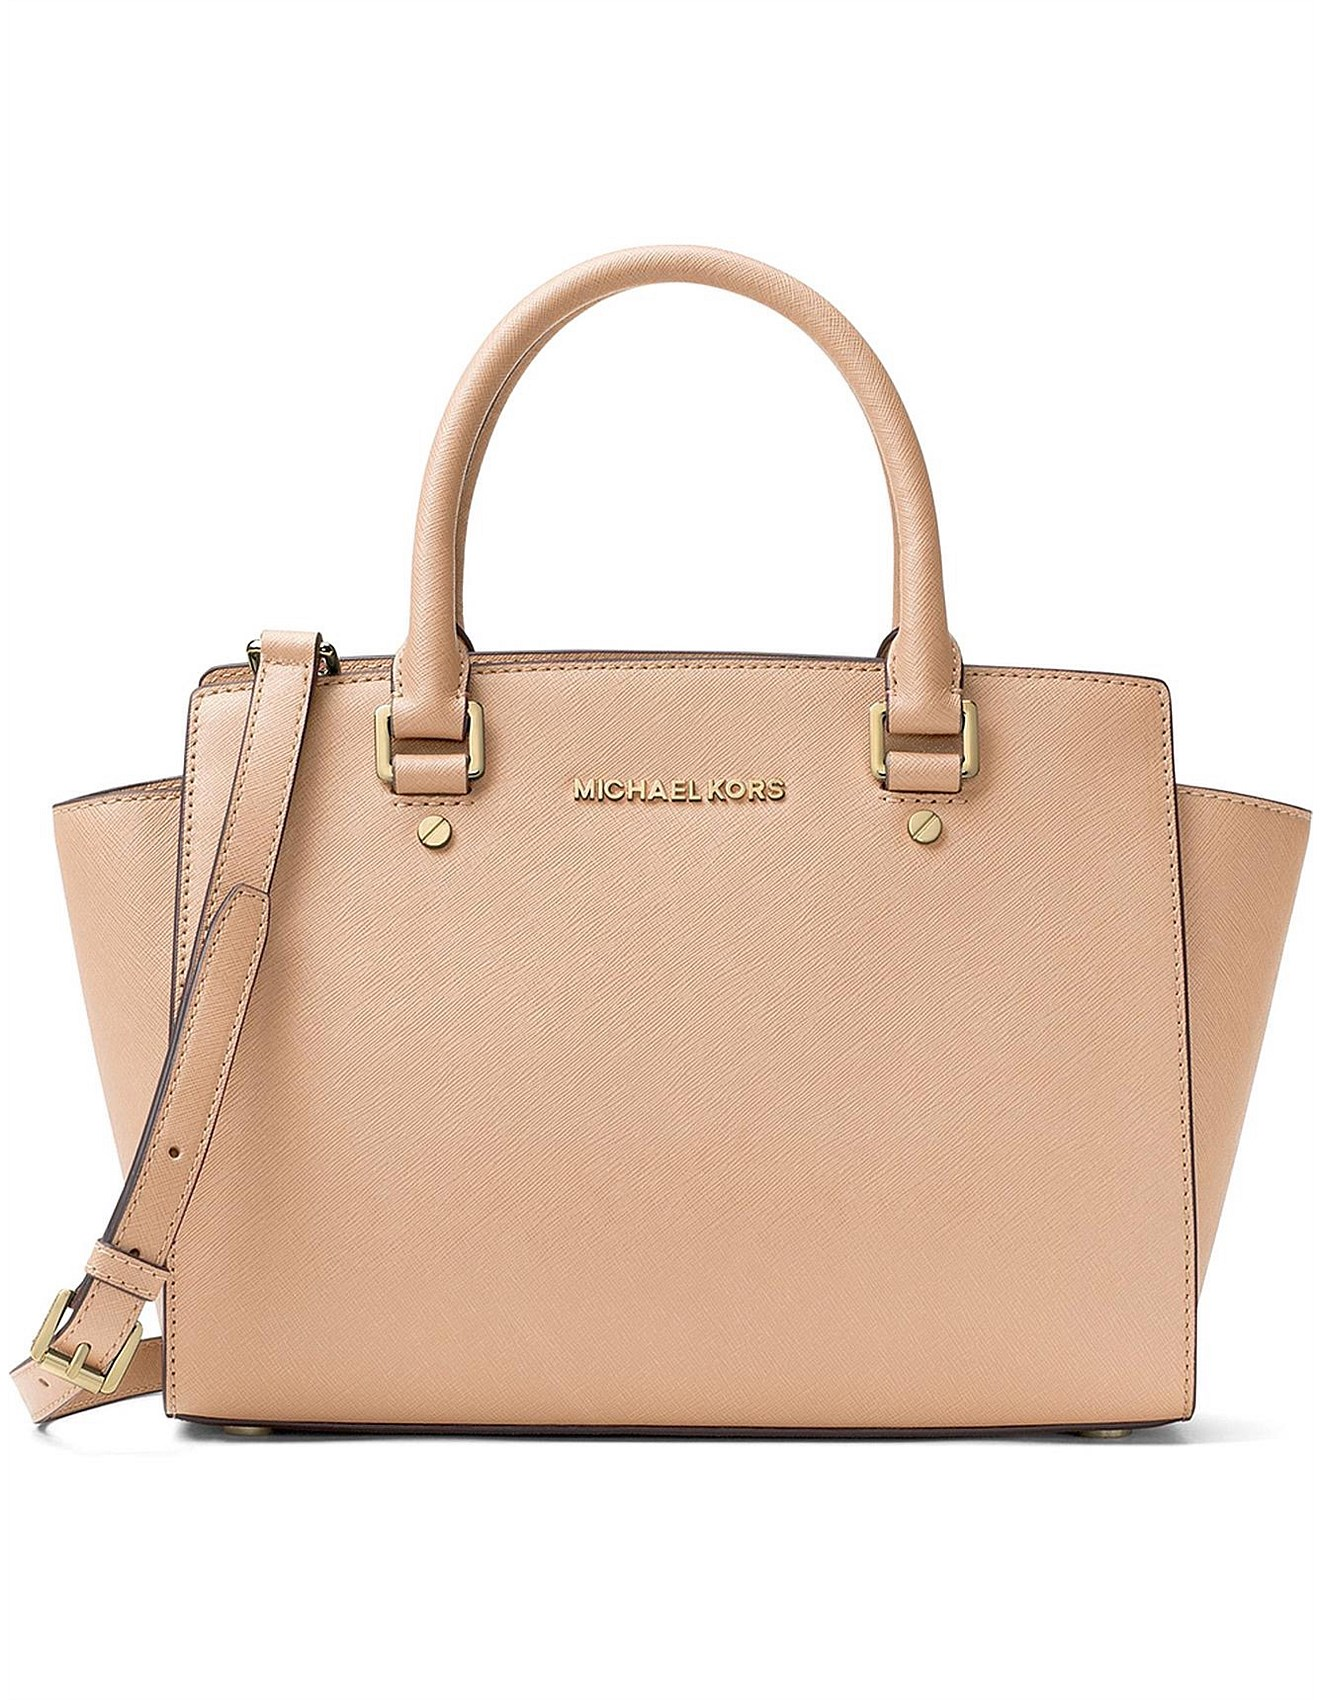 bf713e96c2f8 Selma Medium Saffiano Satchel. 1